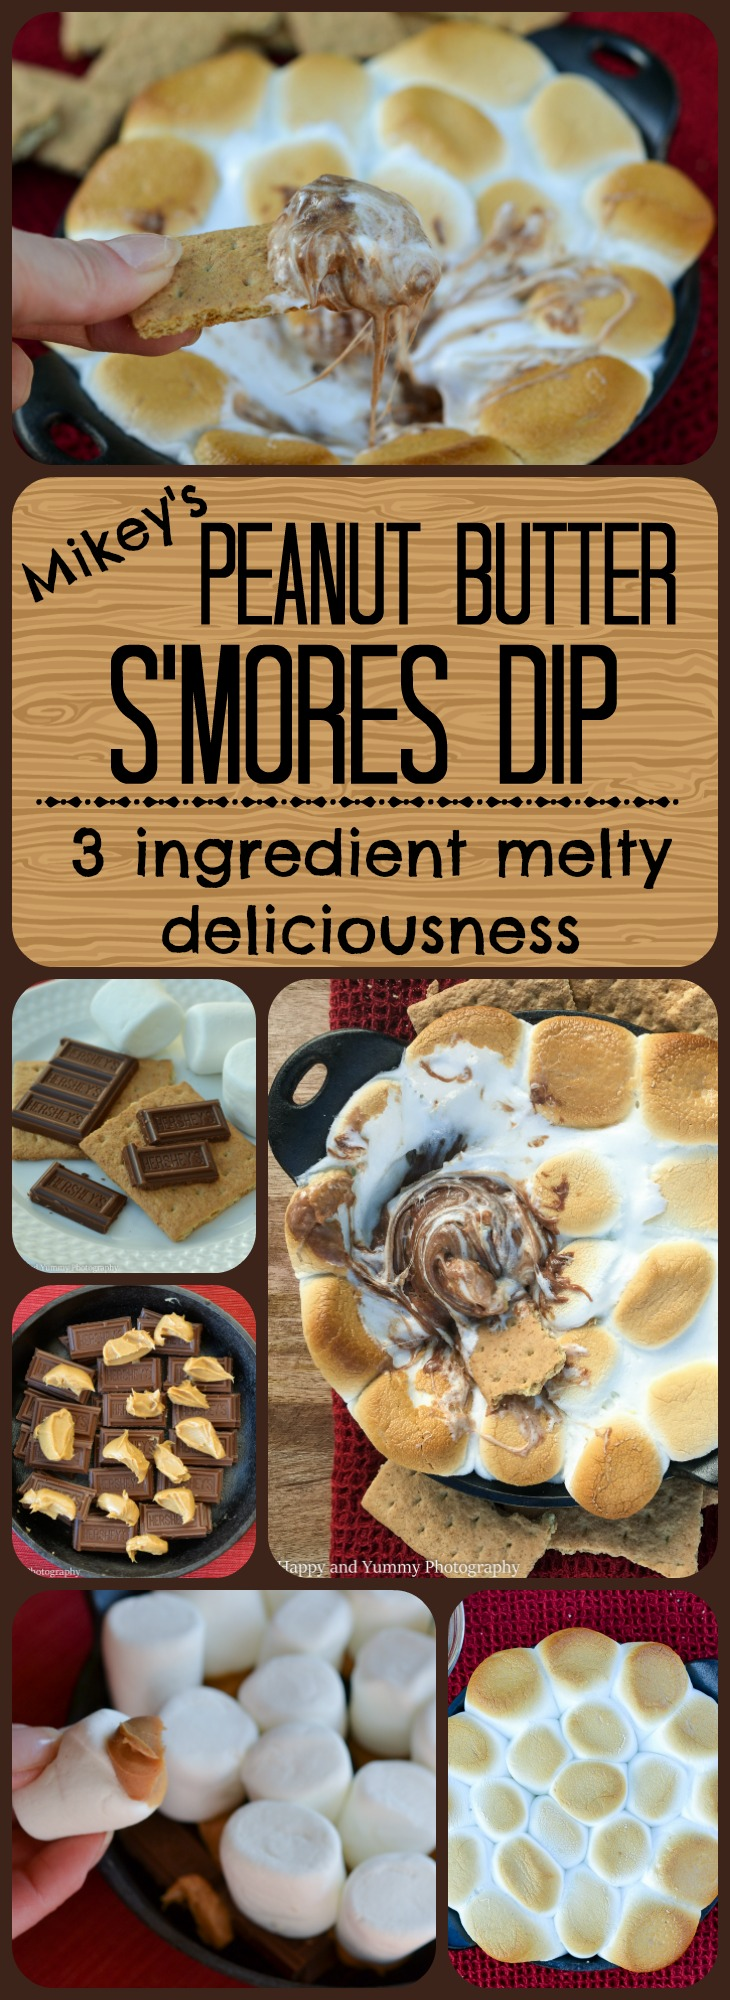 peanut butter smores dip long collage